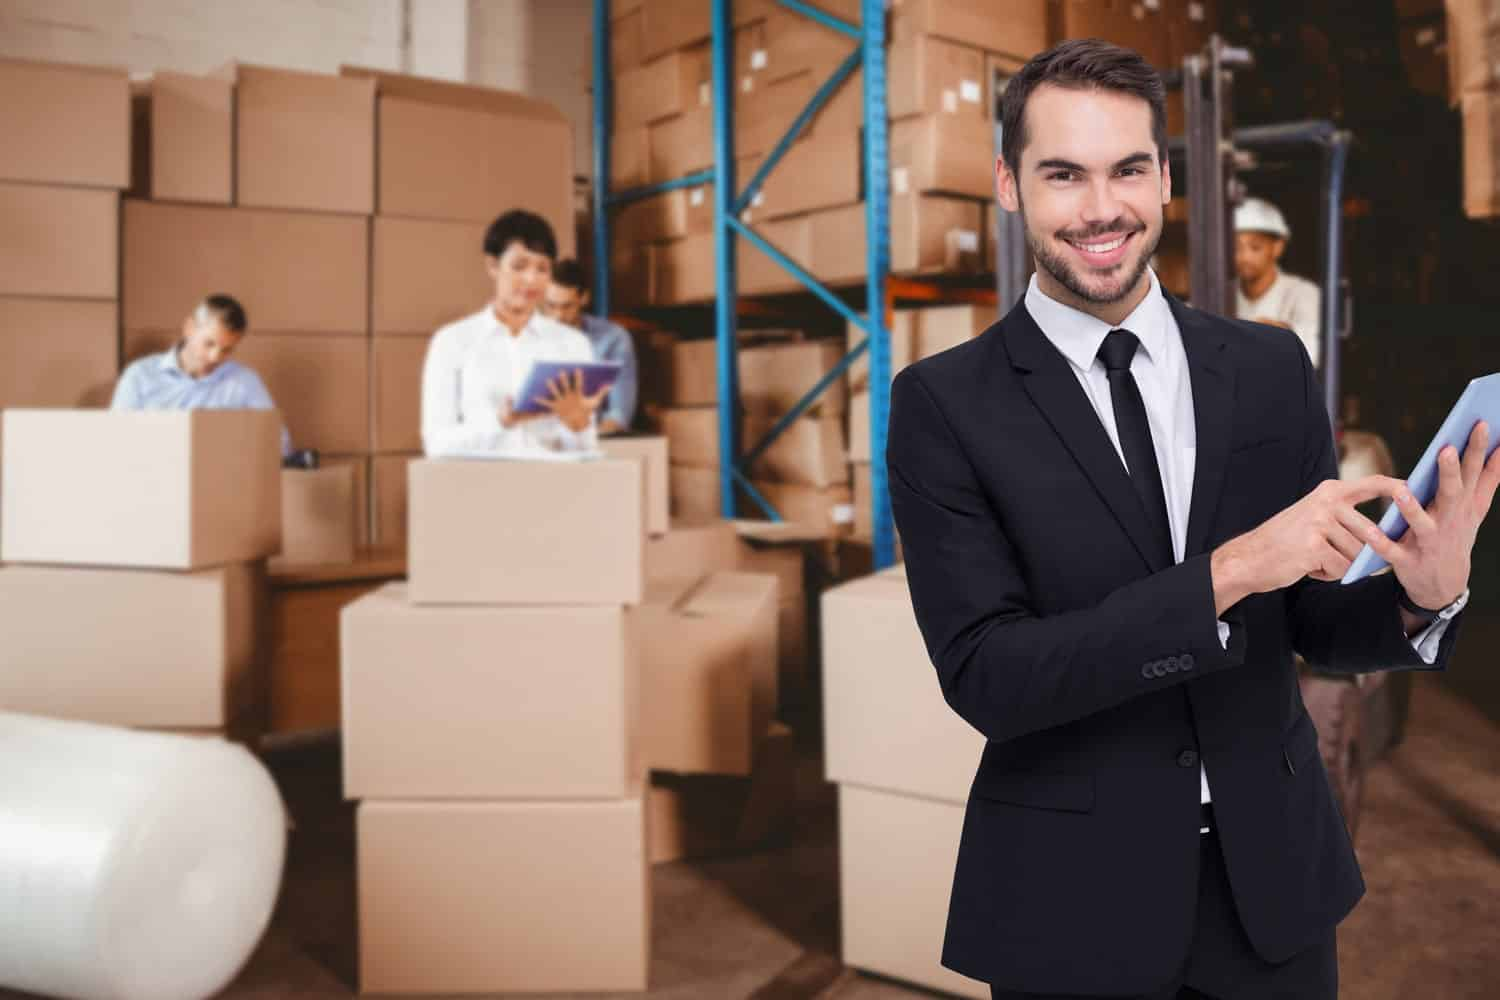 Employees checking business goods stored at Total Self Storage